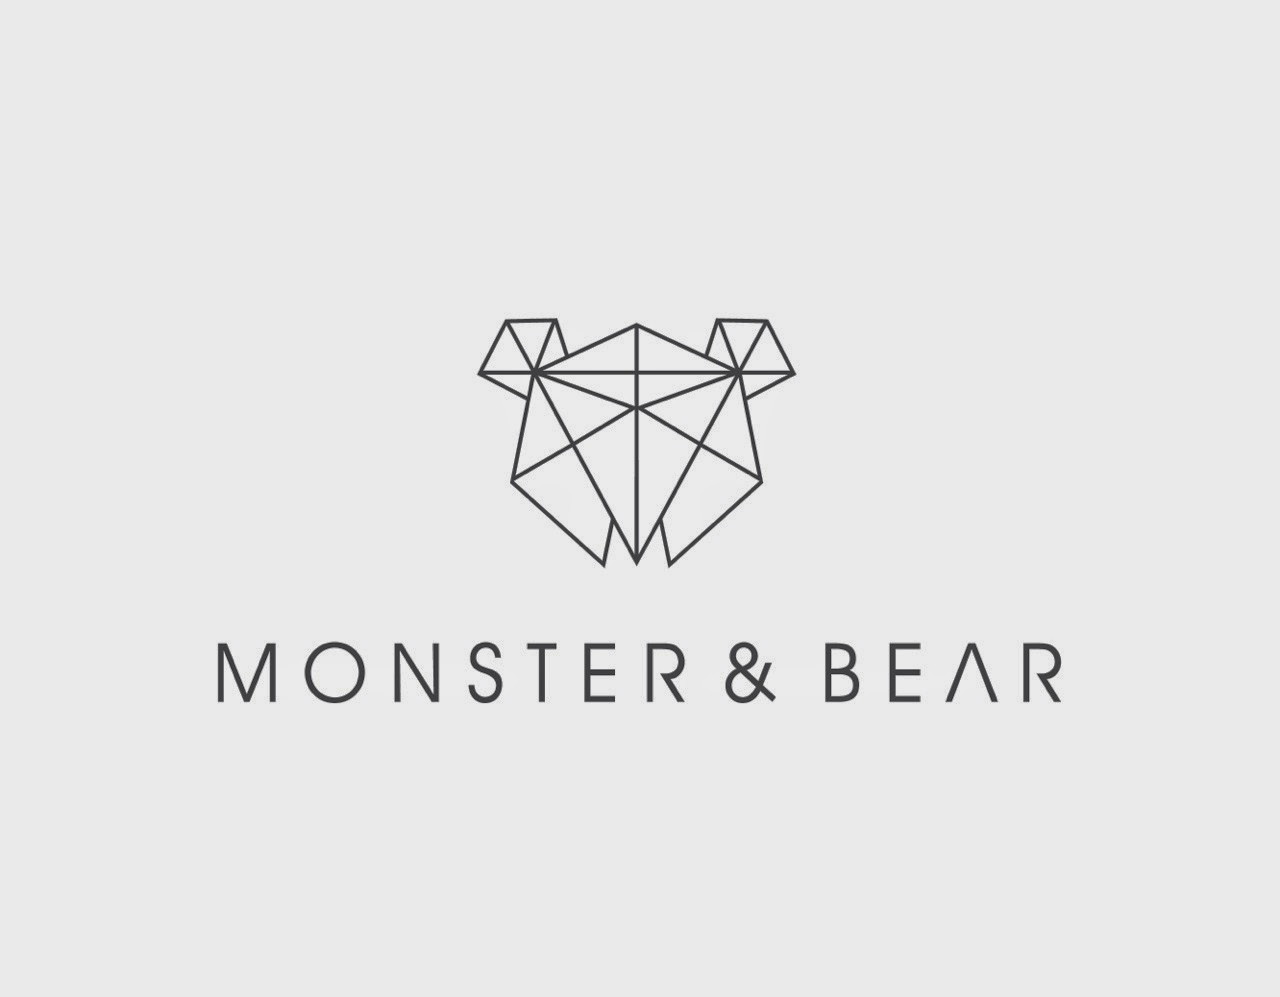 Monster & Bear a Video Production Company have launched a system to complete film and video production during Covid-19 lockdown